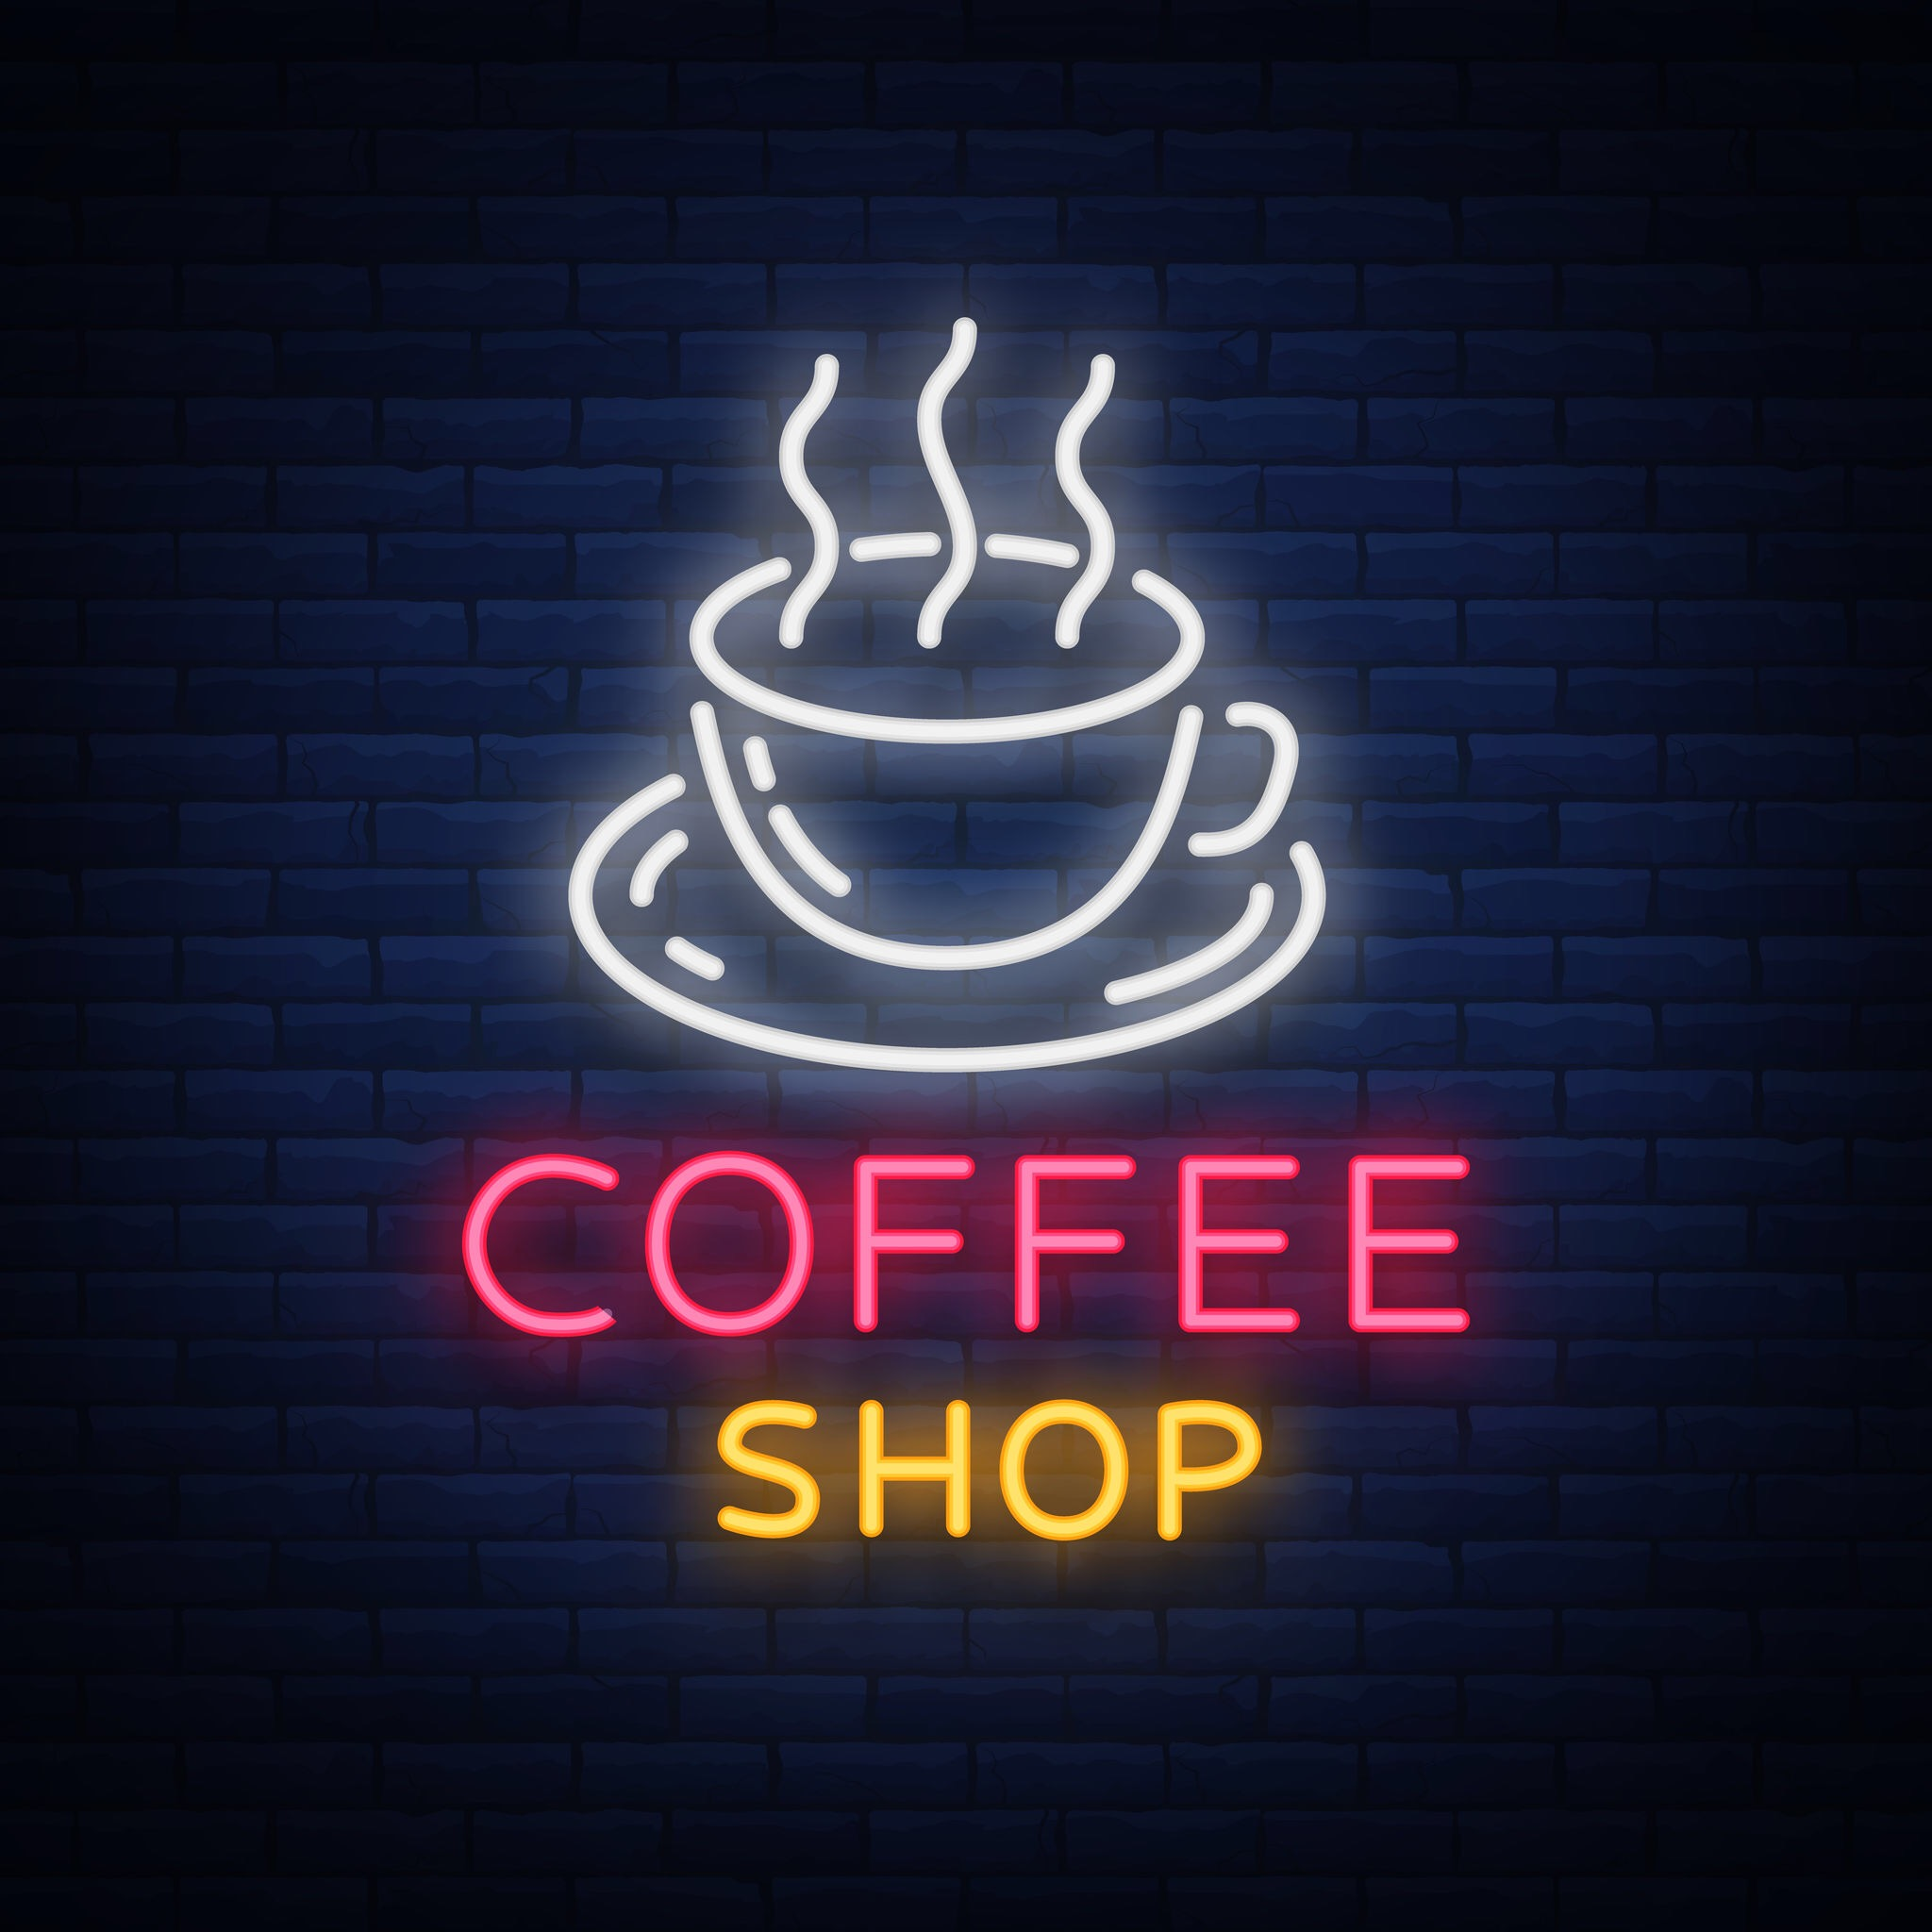 Coffee Shop & Cafe